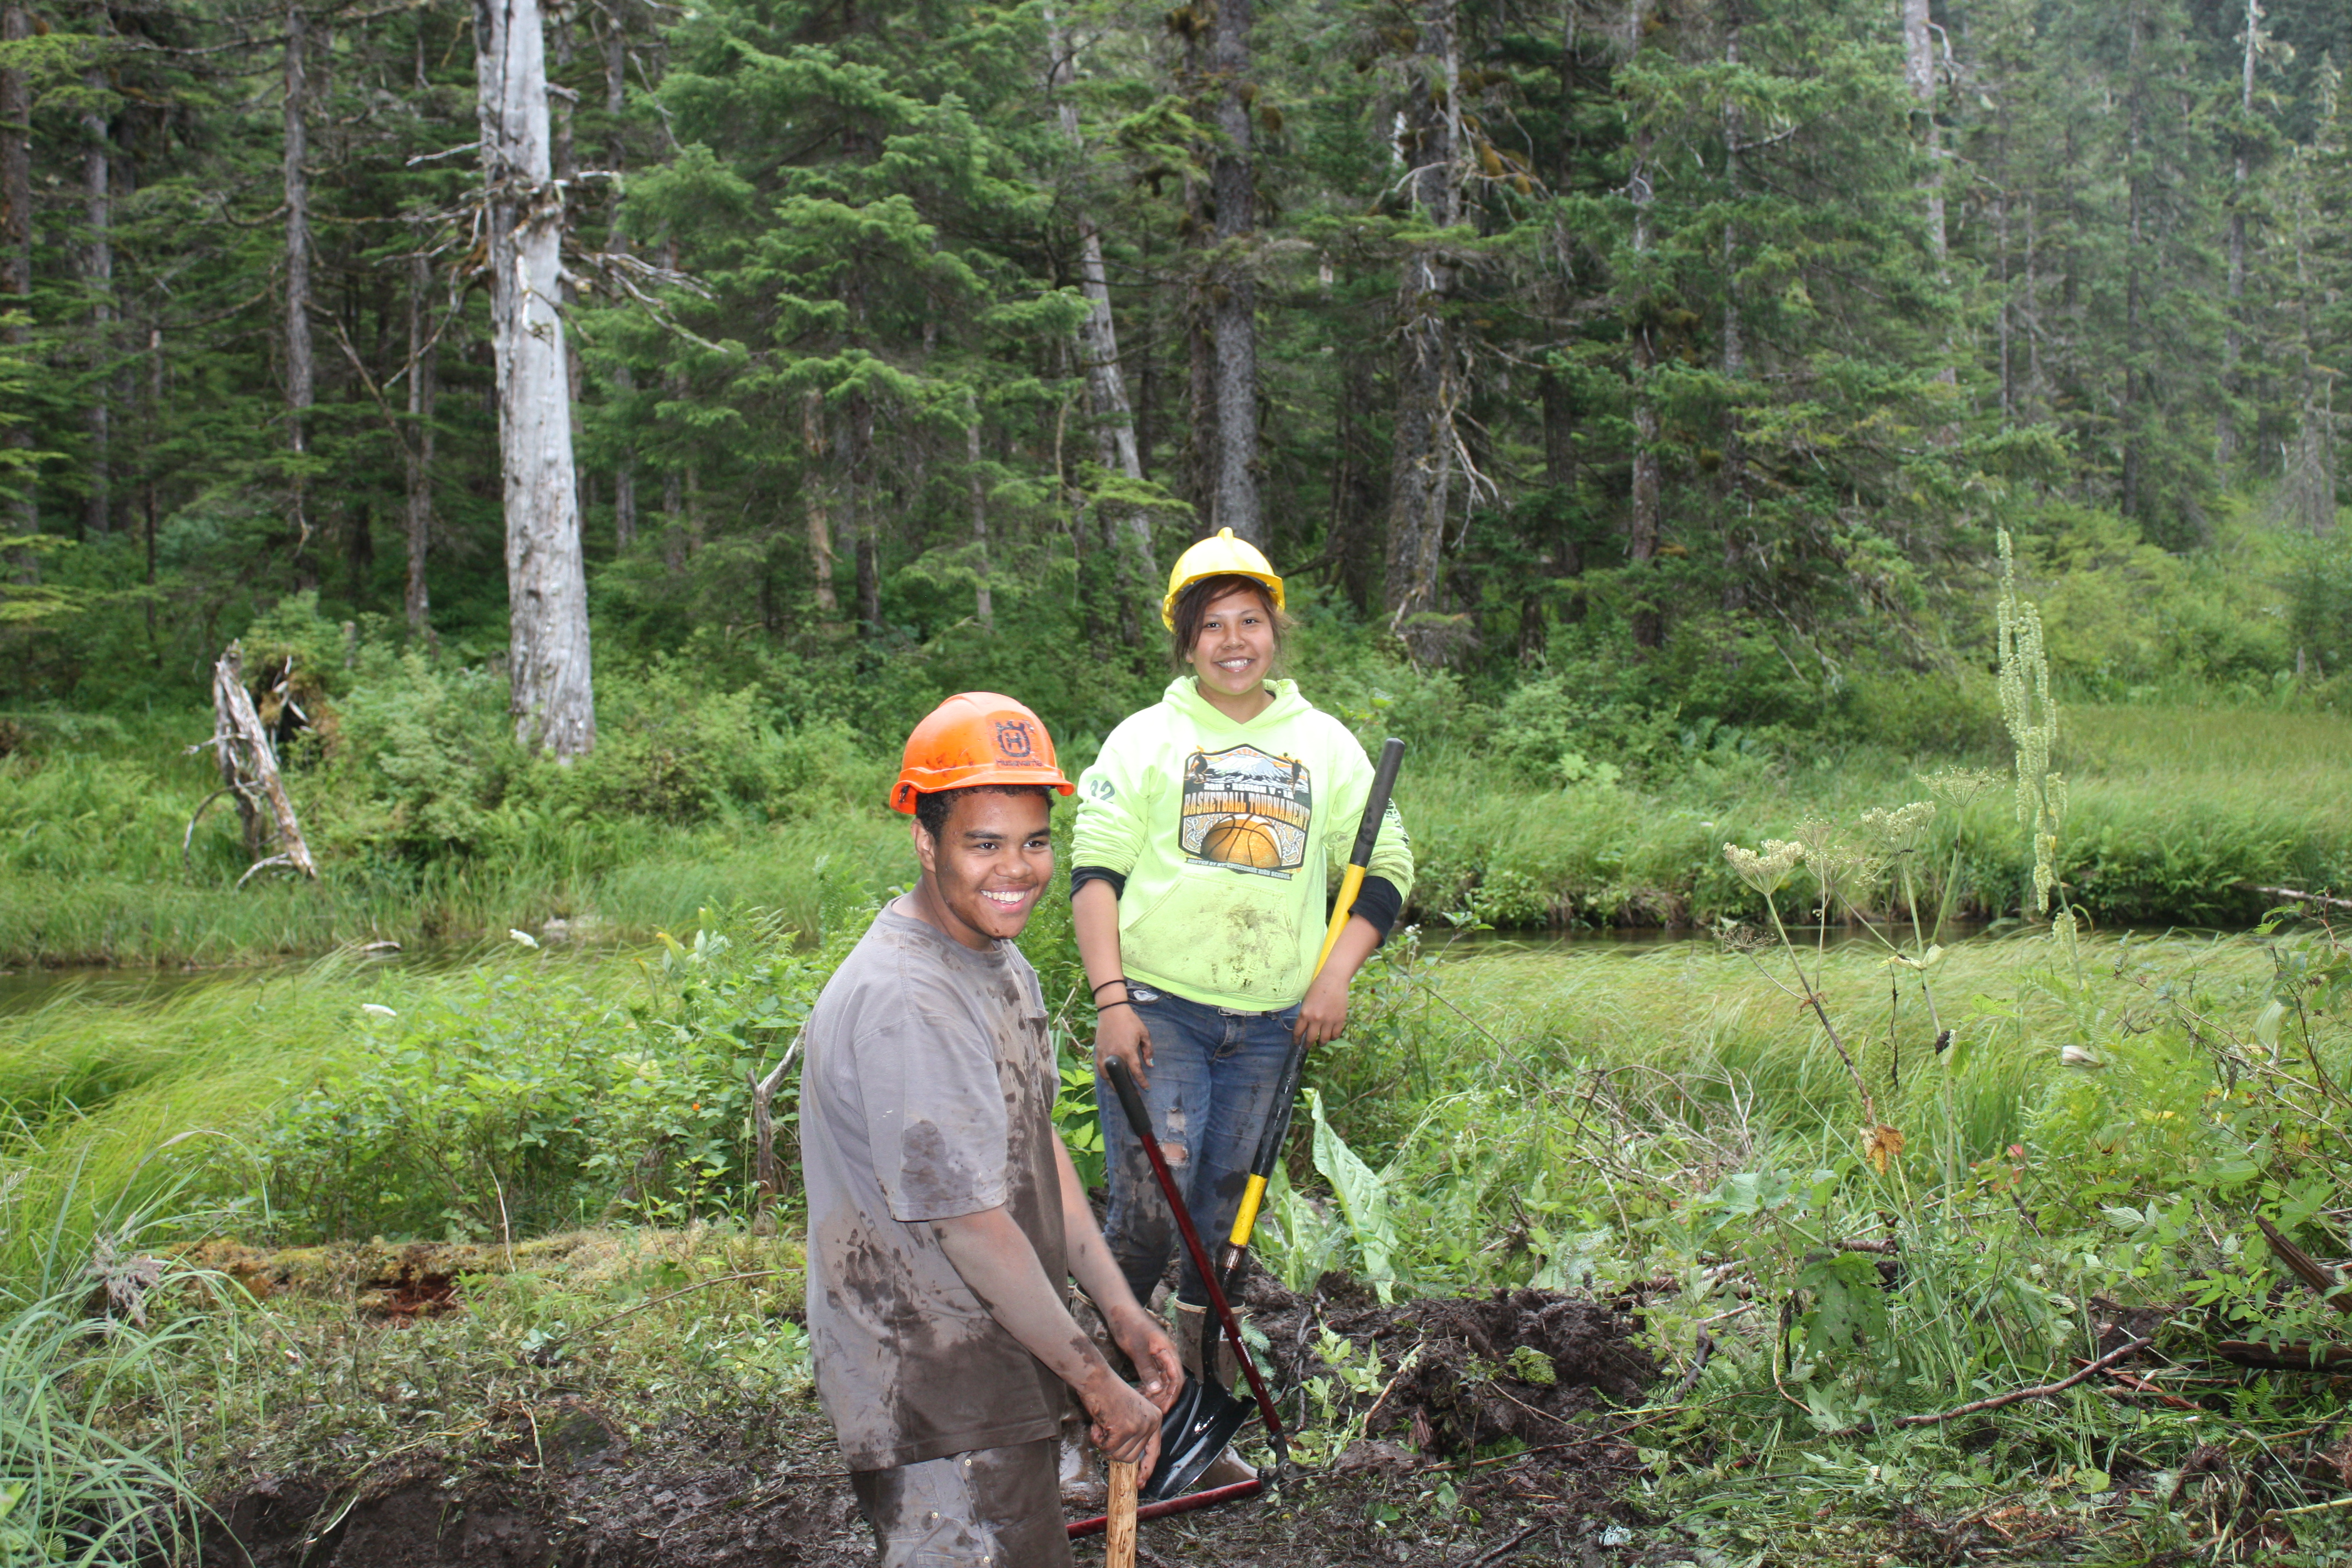 Angoon Youth Conservation Corps members Kevin Mitchell and Desiree Jamestown get their hands dirty doing trail work on Admiralty National Monument in the Tongass National Forest during their 8-week, 2016 season.